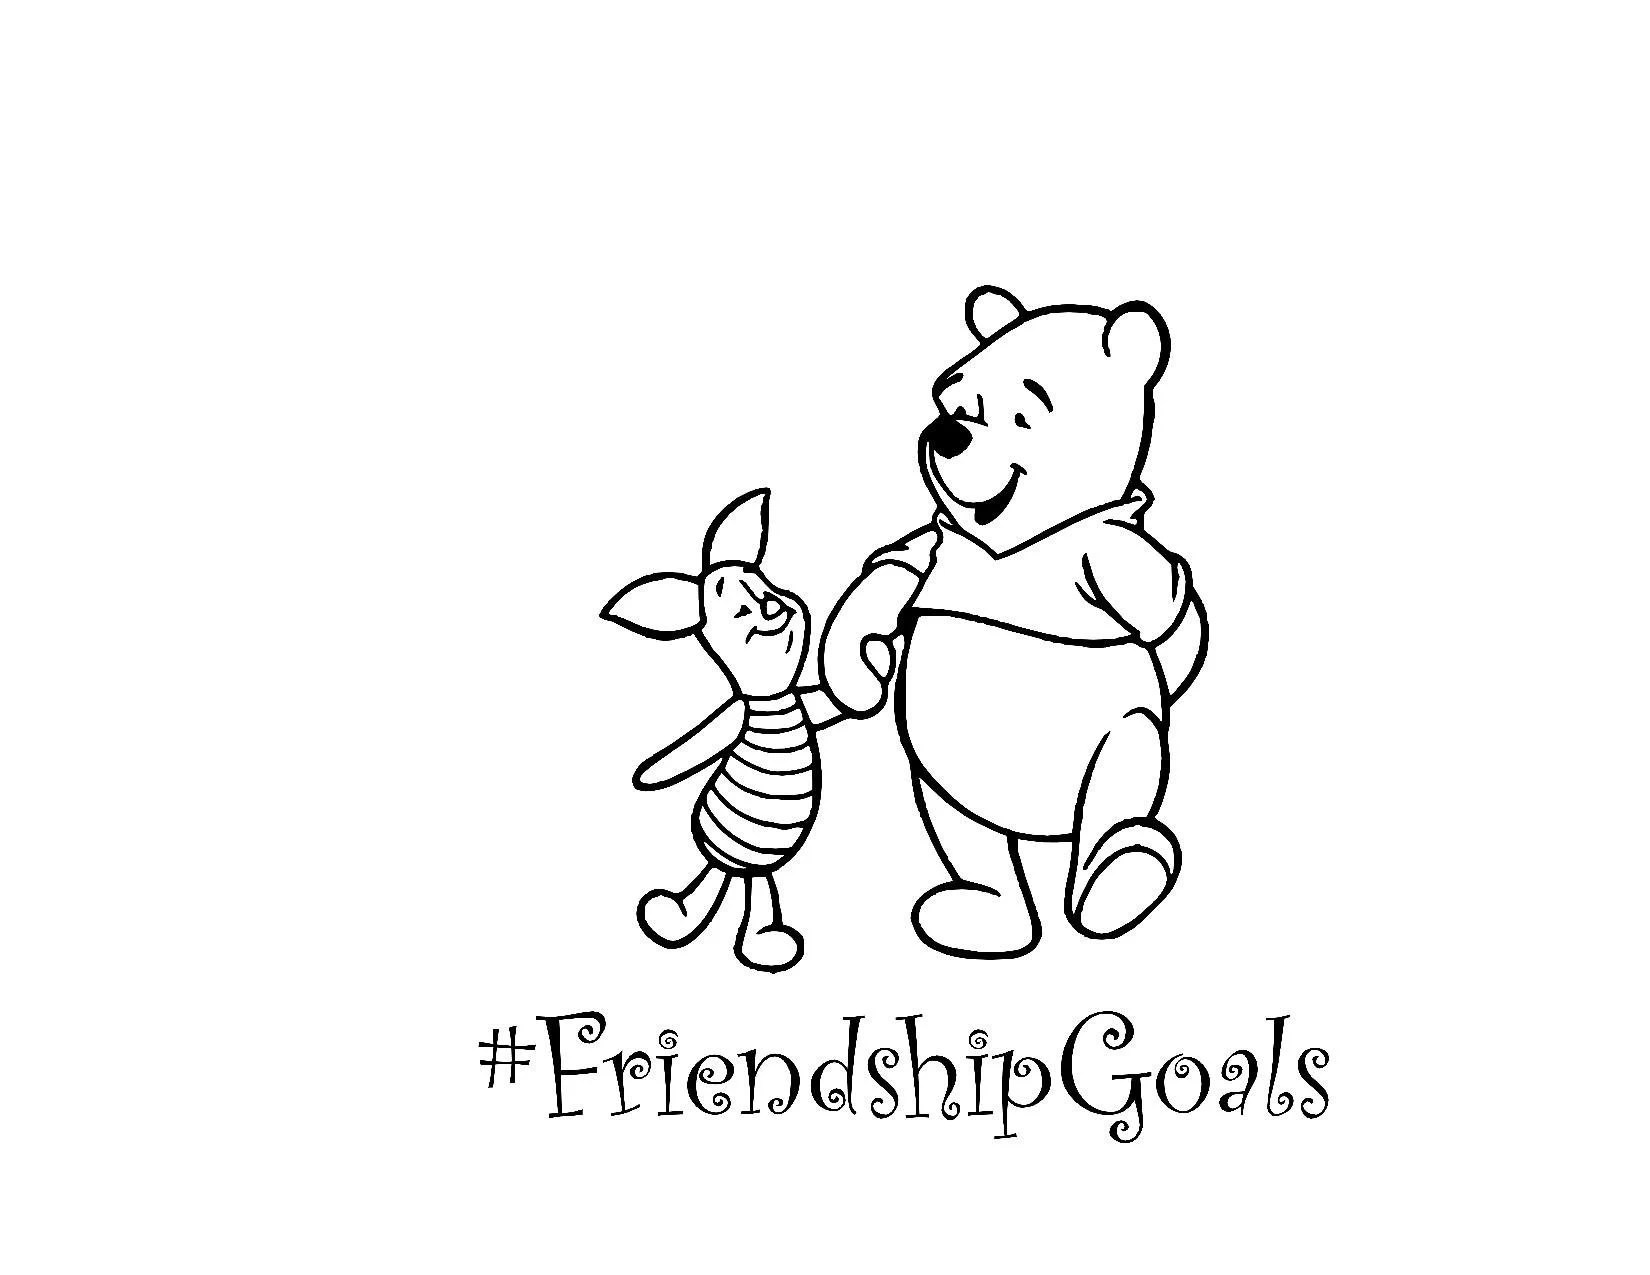 Disney Winnie The Pooh Piglet Friendship Goals Svg Digital